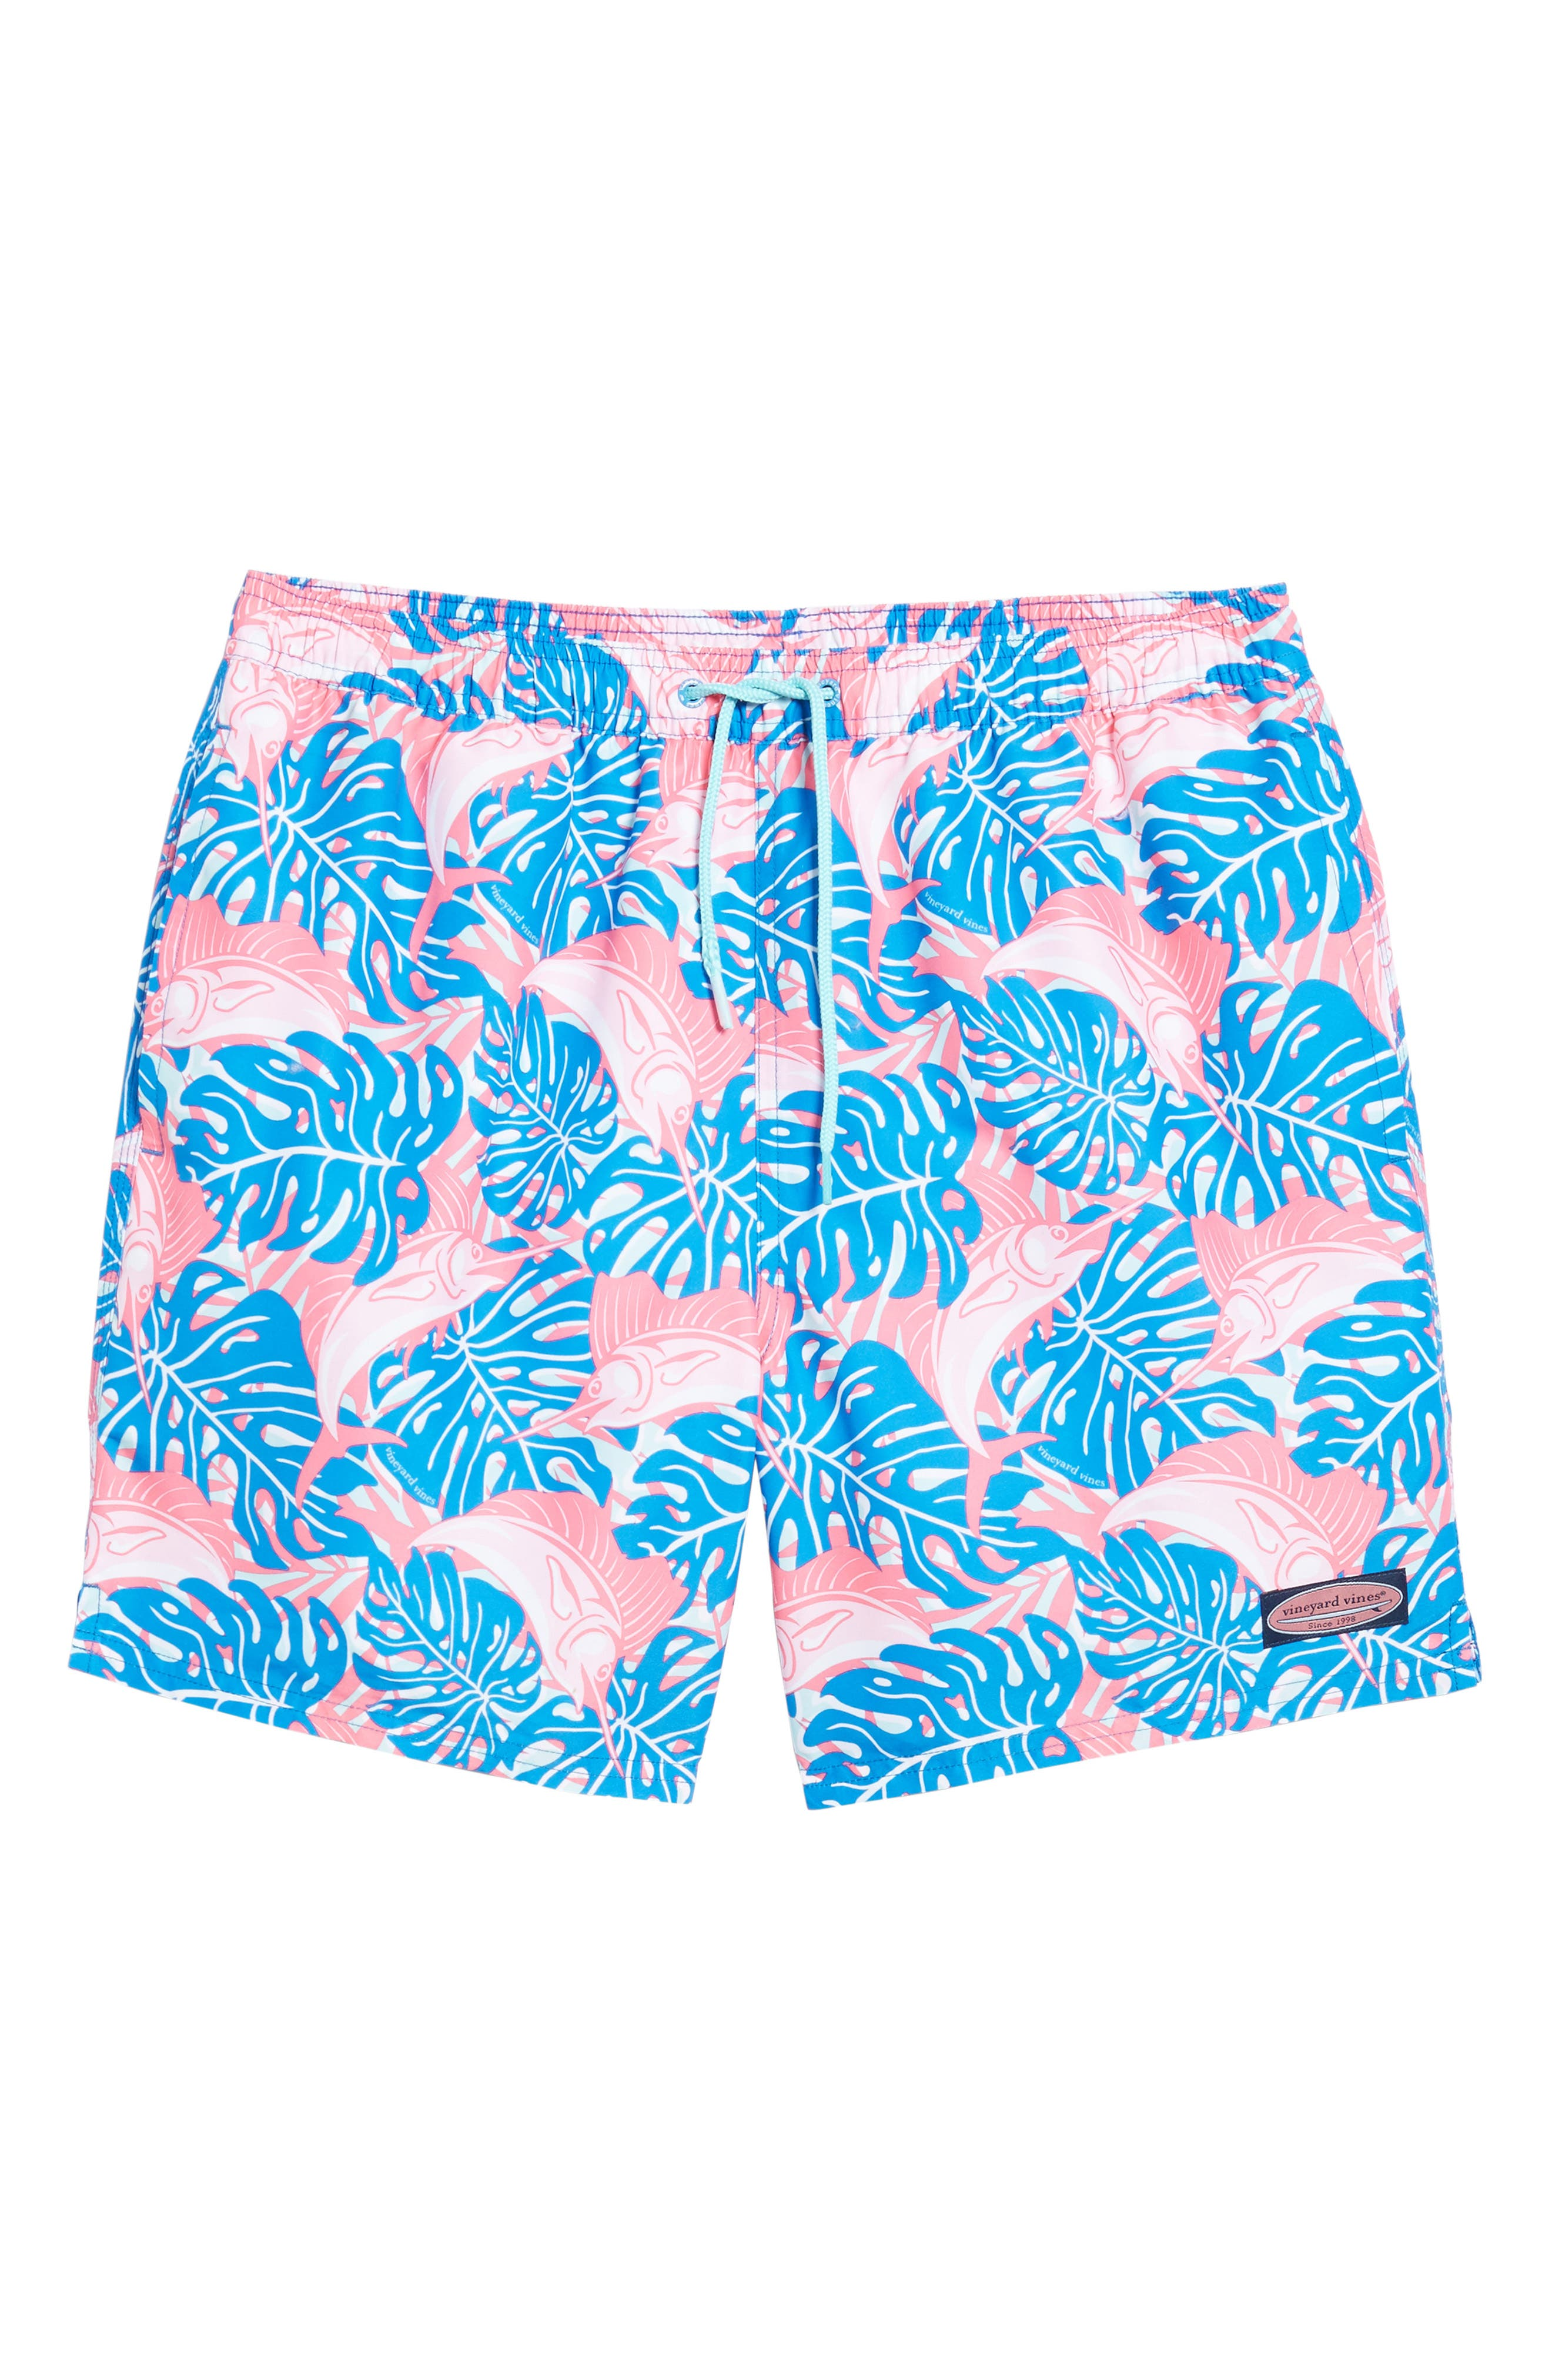 Sailfish & Leaves Chappy Swim Trunks,                             Alternate thumbnail 6, color,                             Azure Blue